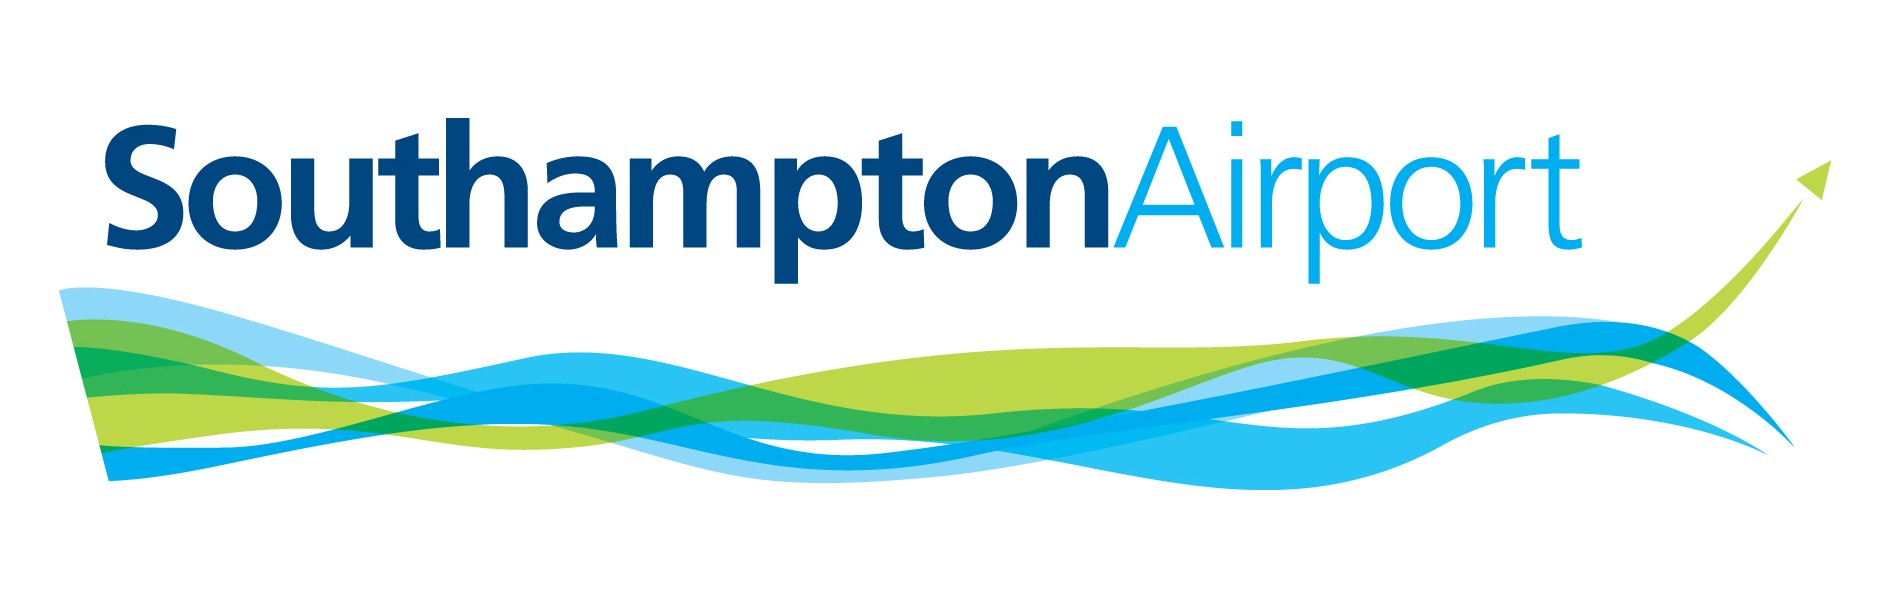 QikServe® coming soon to Southampton Airport